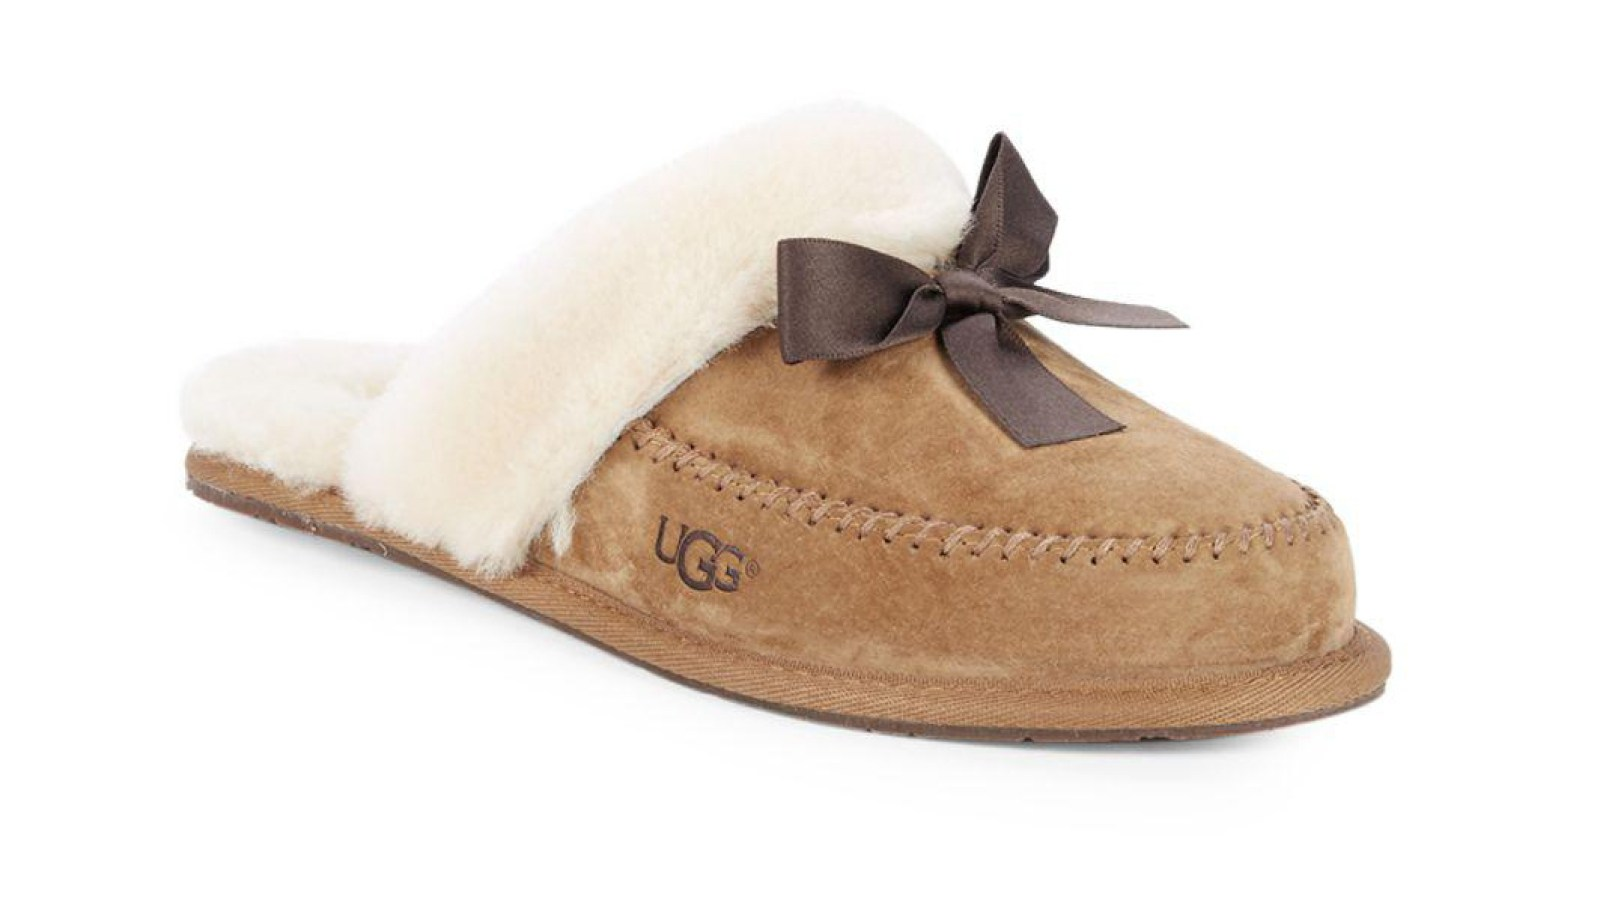 7a657e91ccd Shop Comfy Ugg Shearling Trim Bow Slippers on Sale